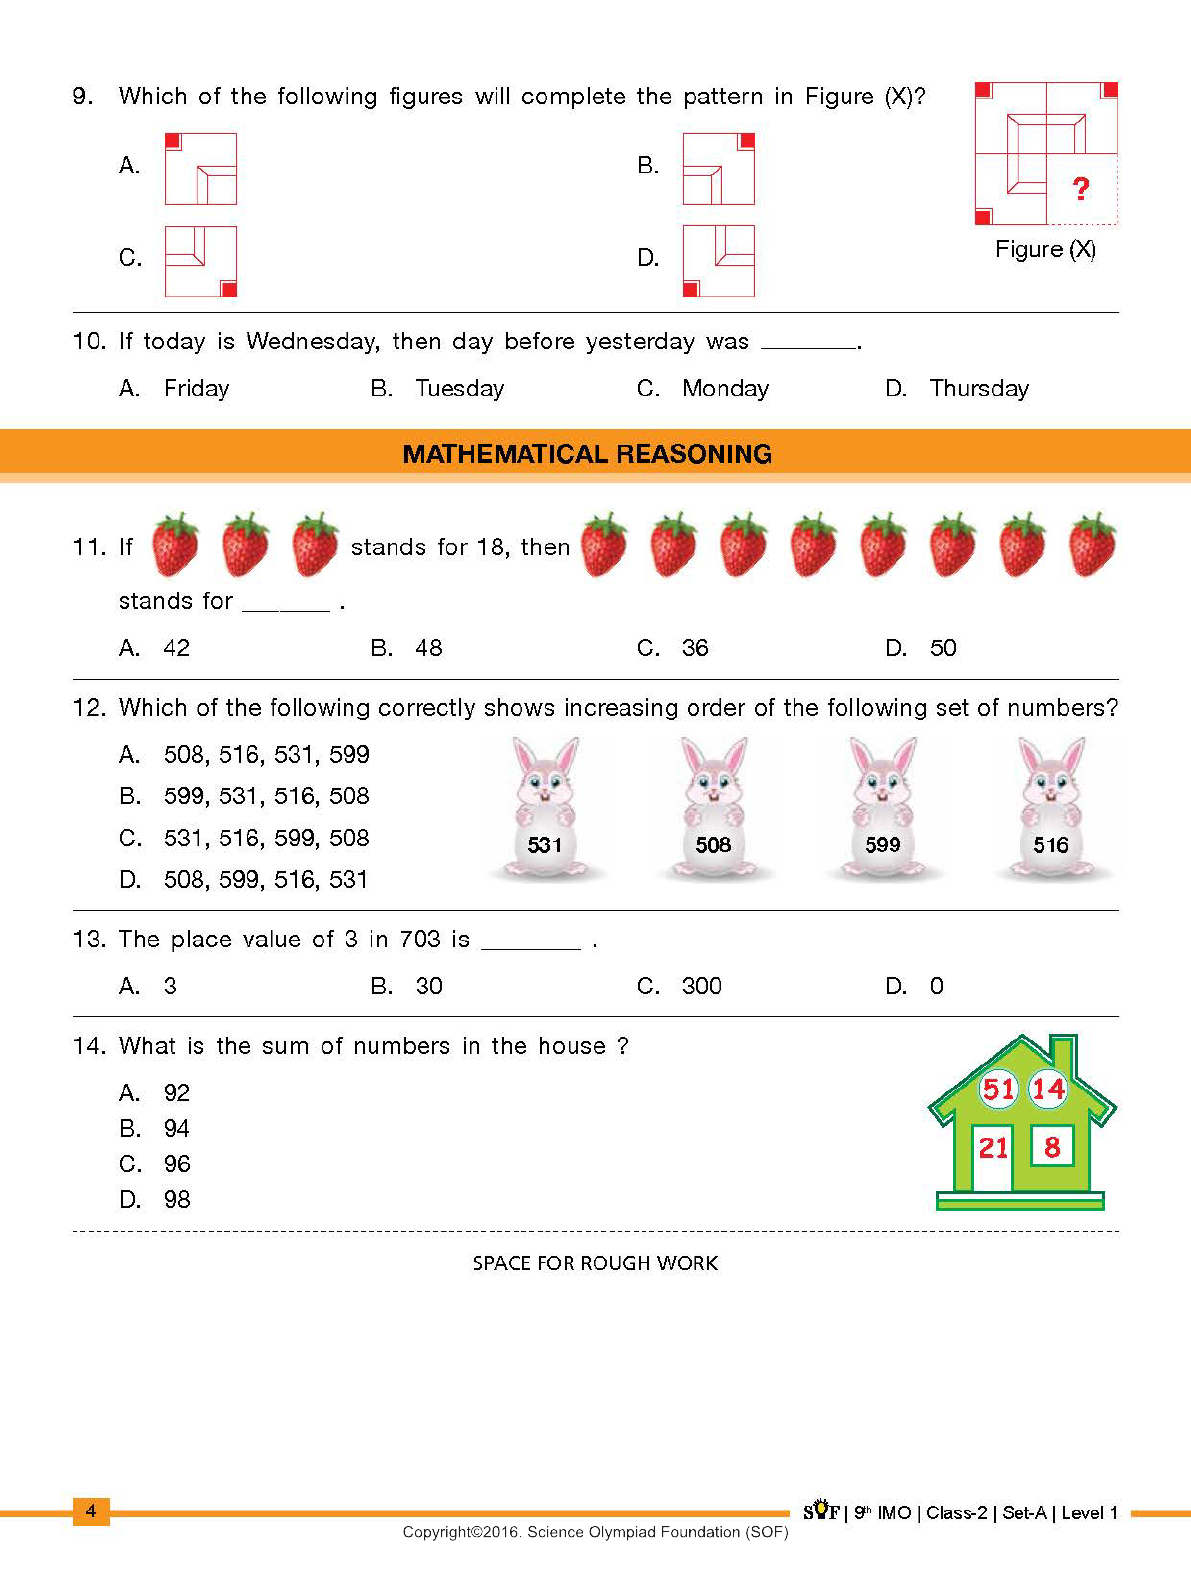 Sample Imo Practice Papers For Grade 2